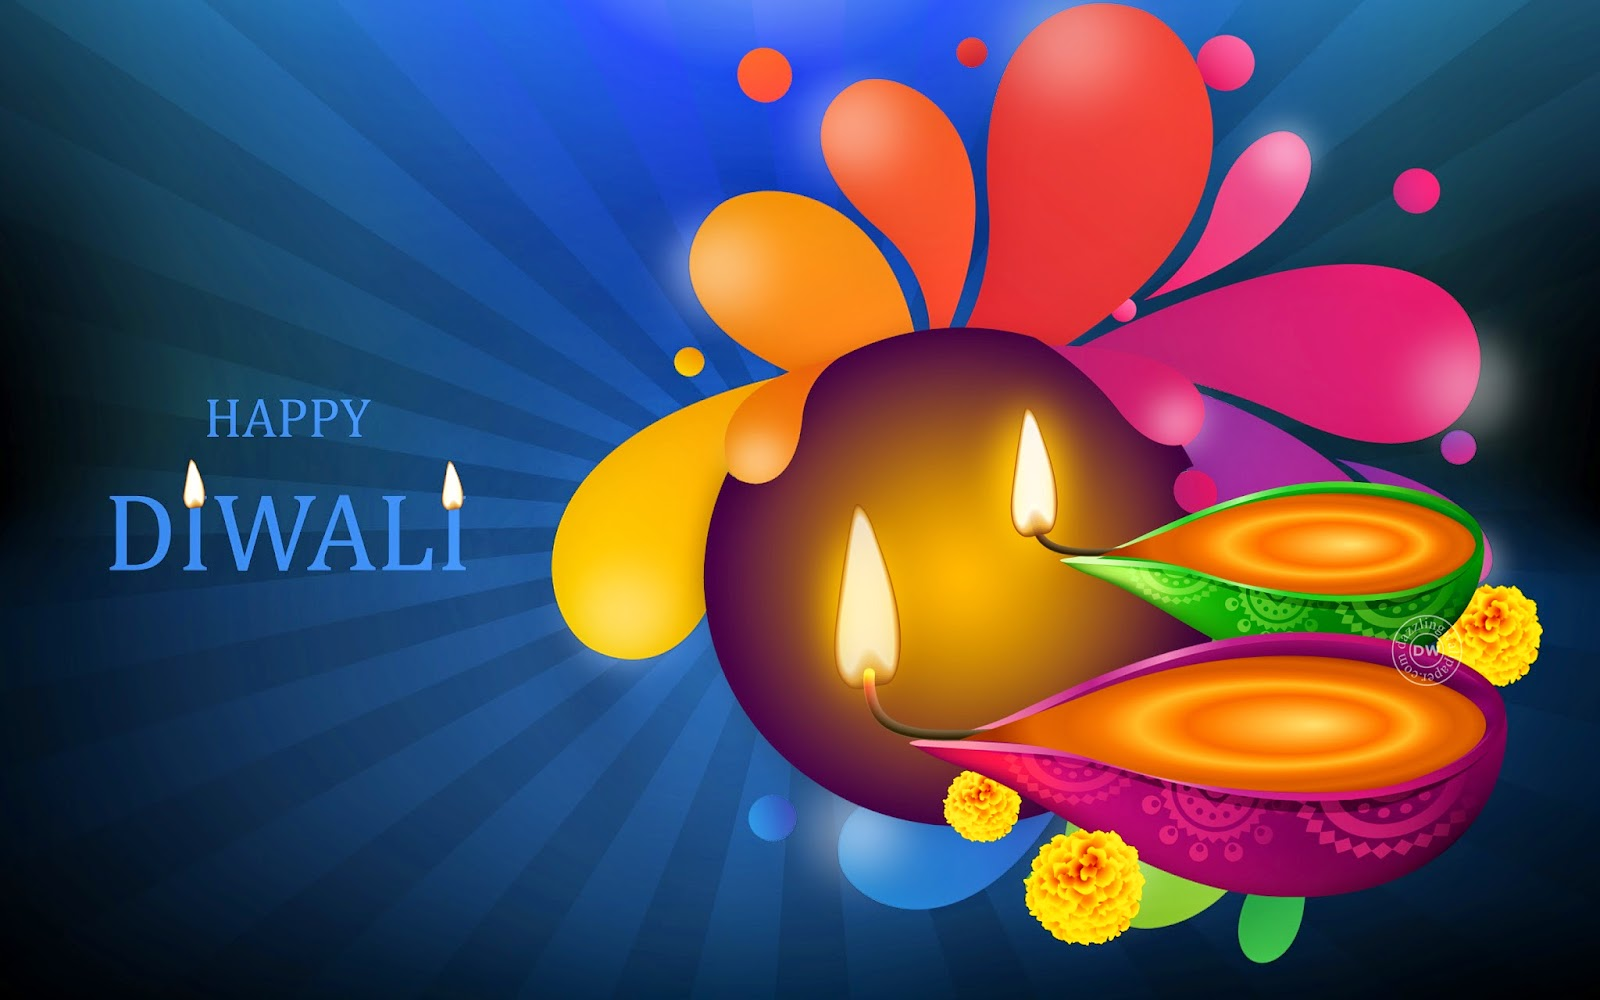 happy diwali 2014 hd wallpapers webphoto gallery